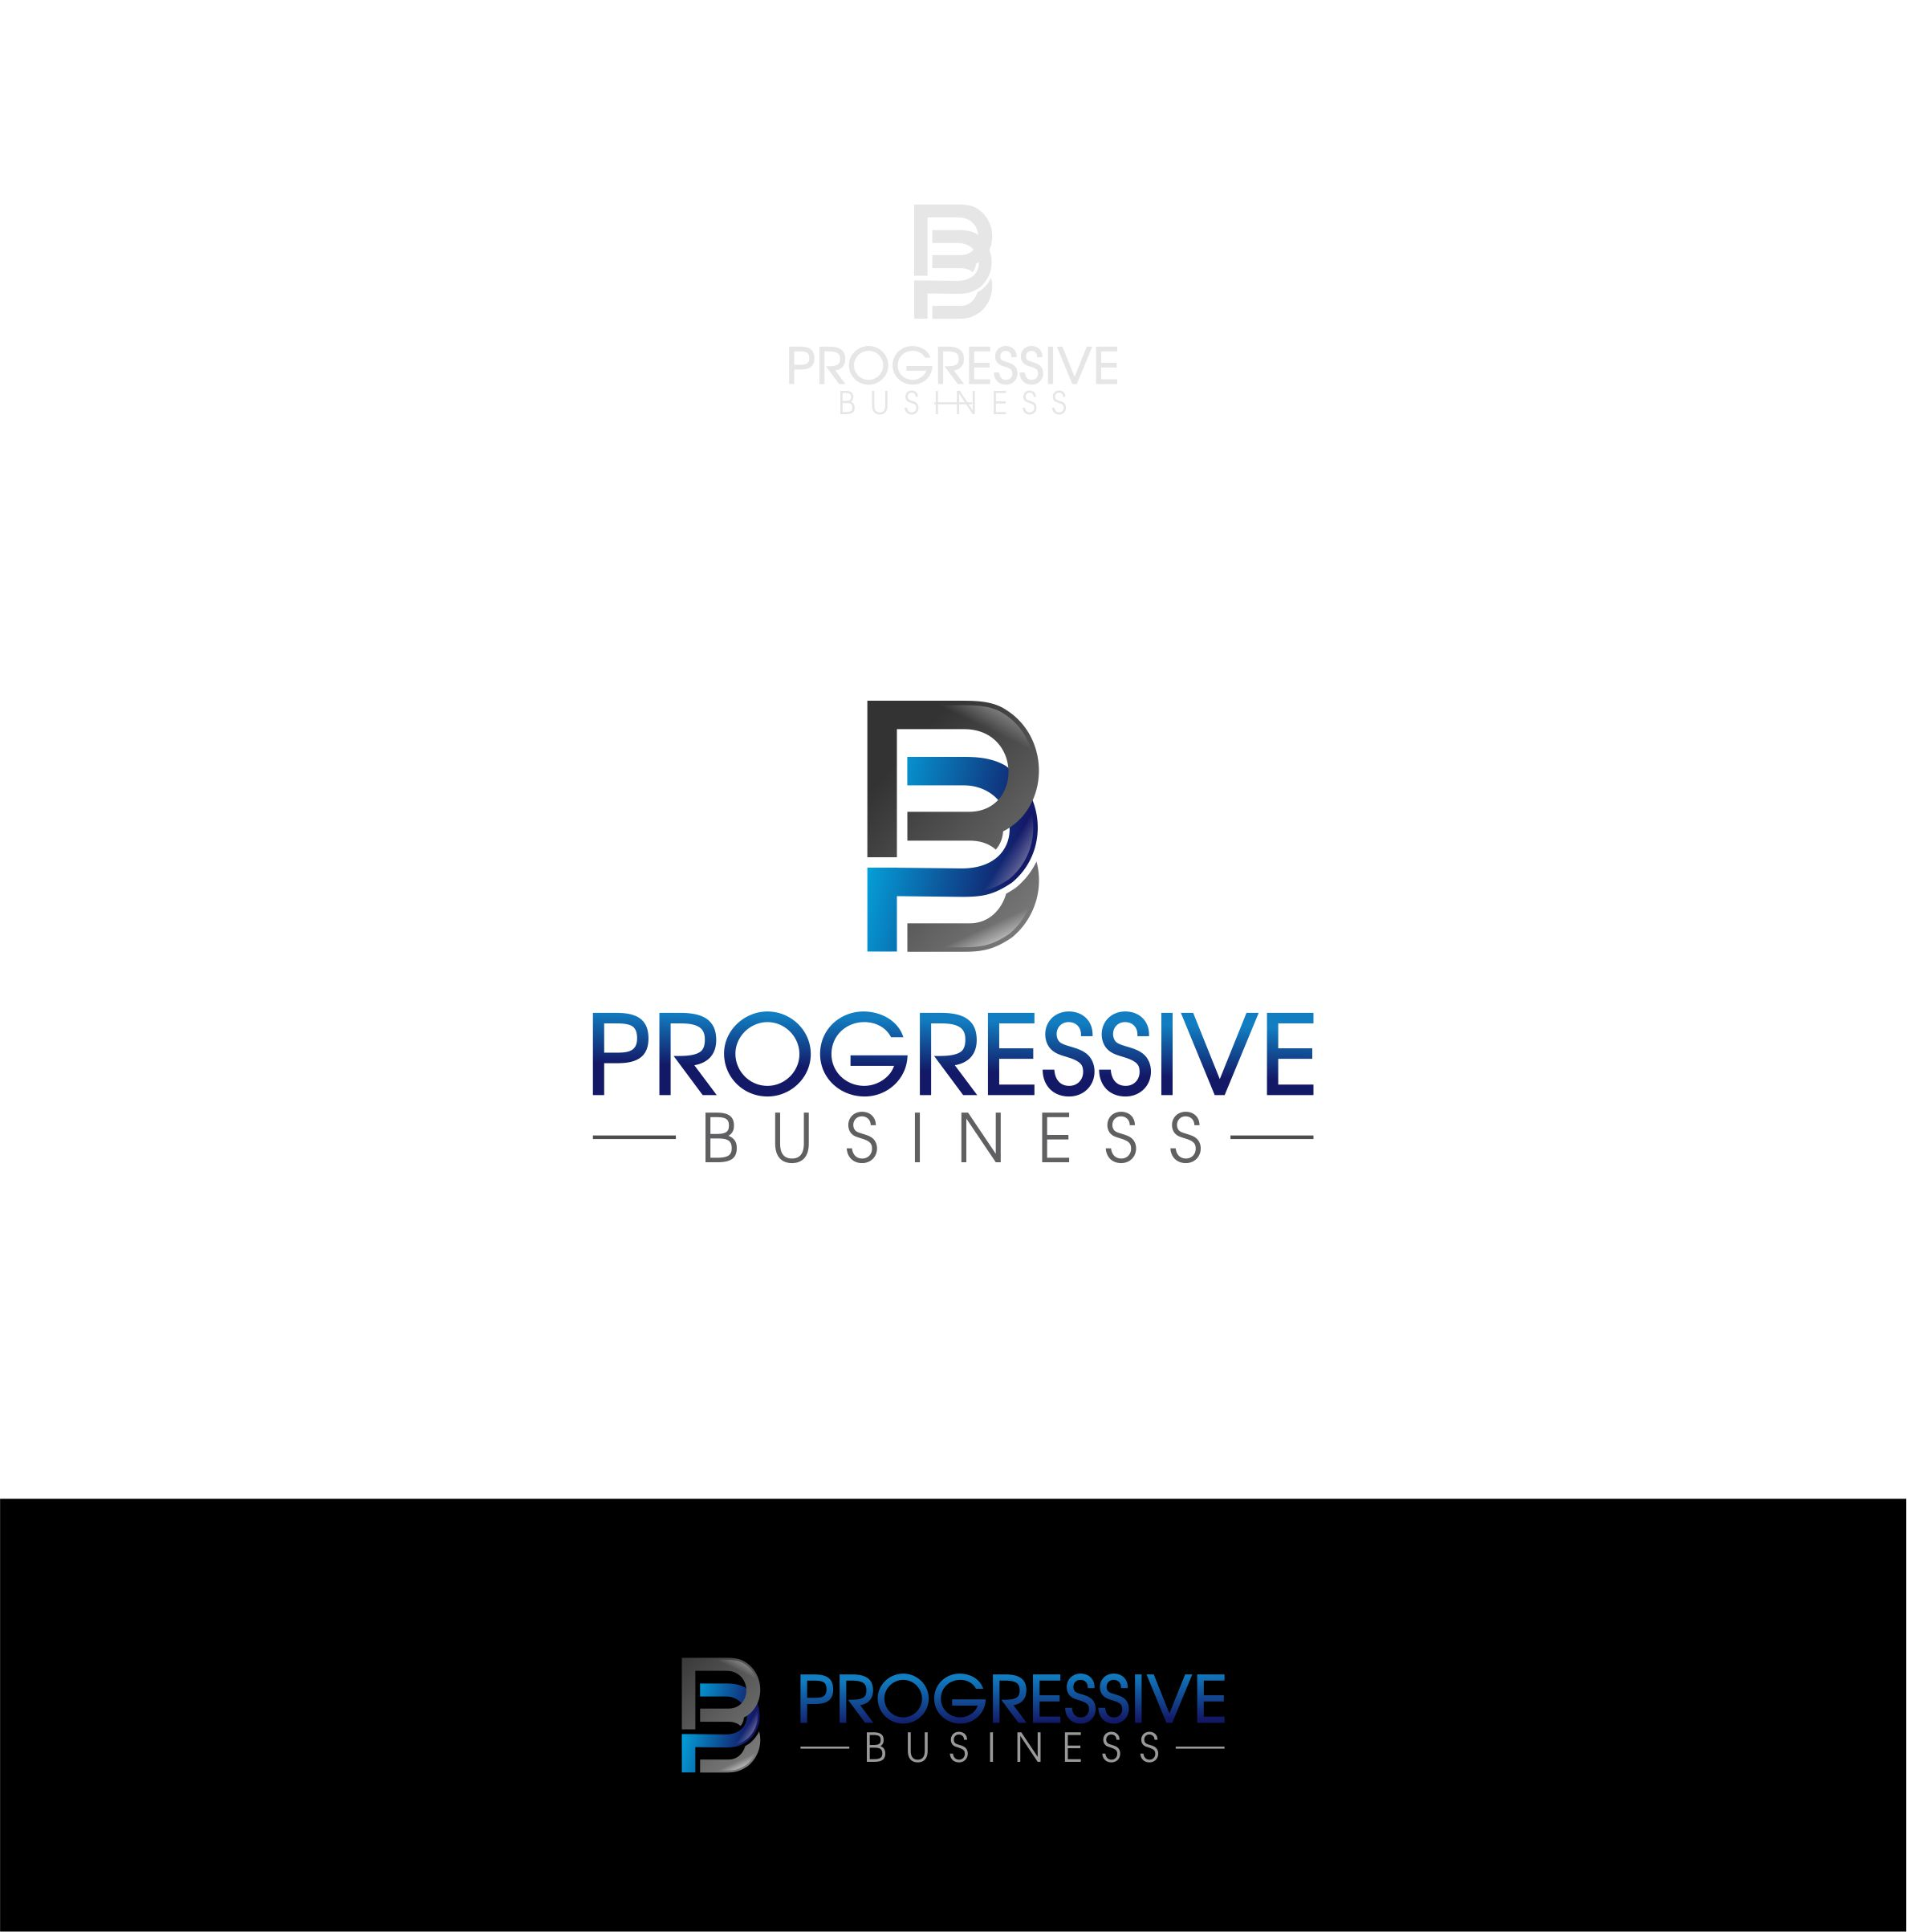 Logo Design by Raymond Garcia - Entry No. 100 in the Logo Design Contest Captivating Logo Design for Progressive Business.